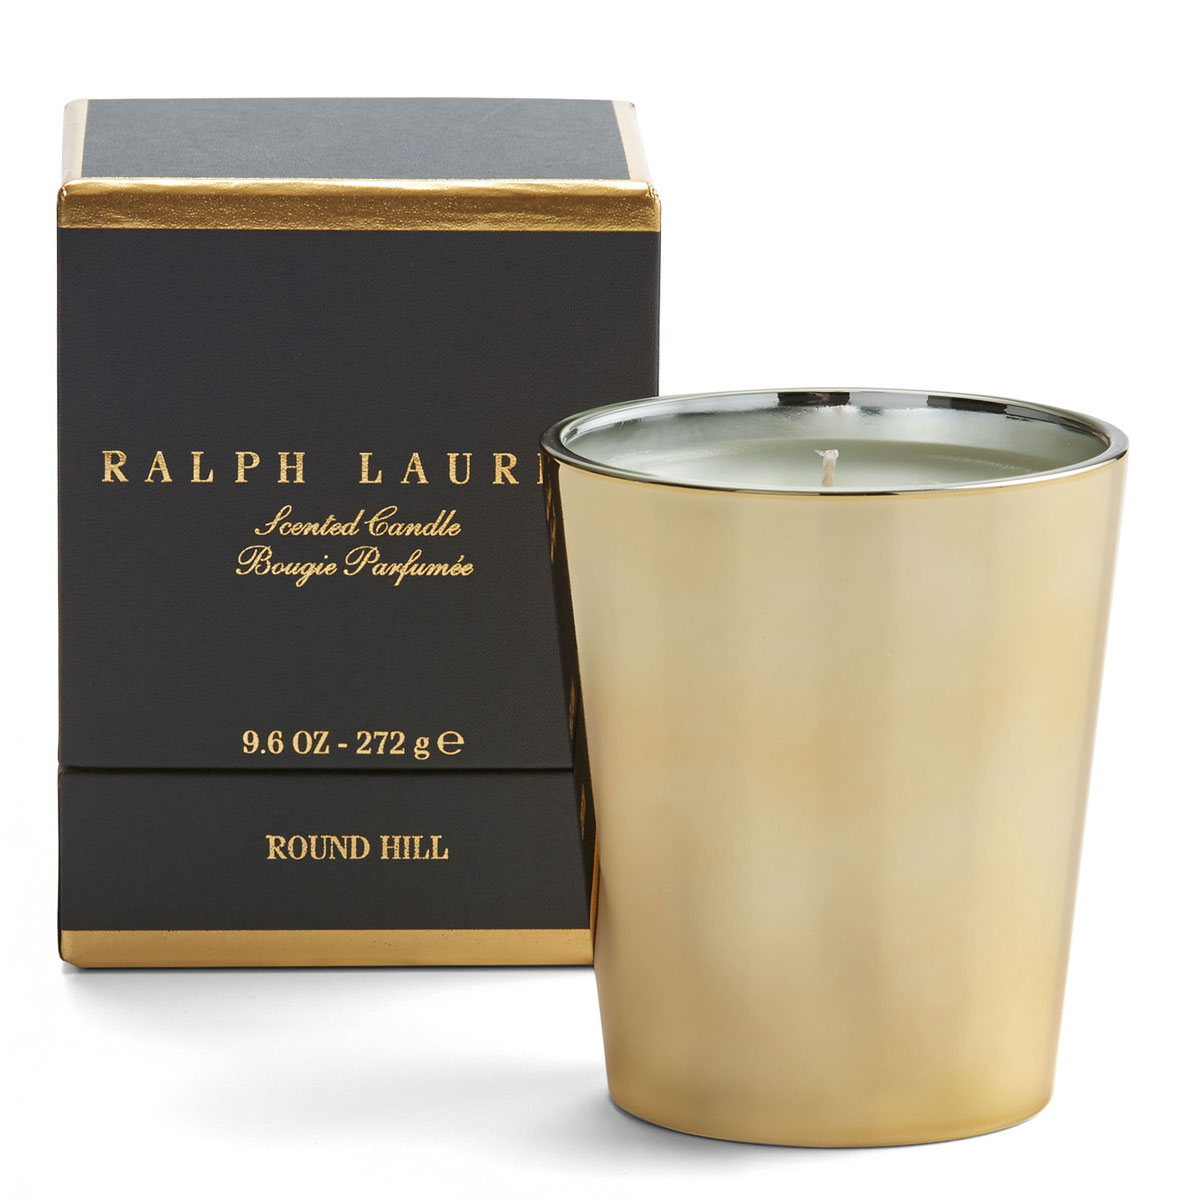 Ralph Lauren Round Hill Single Wick Scented Candle